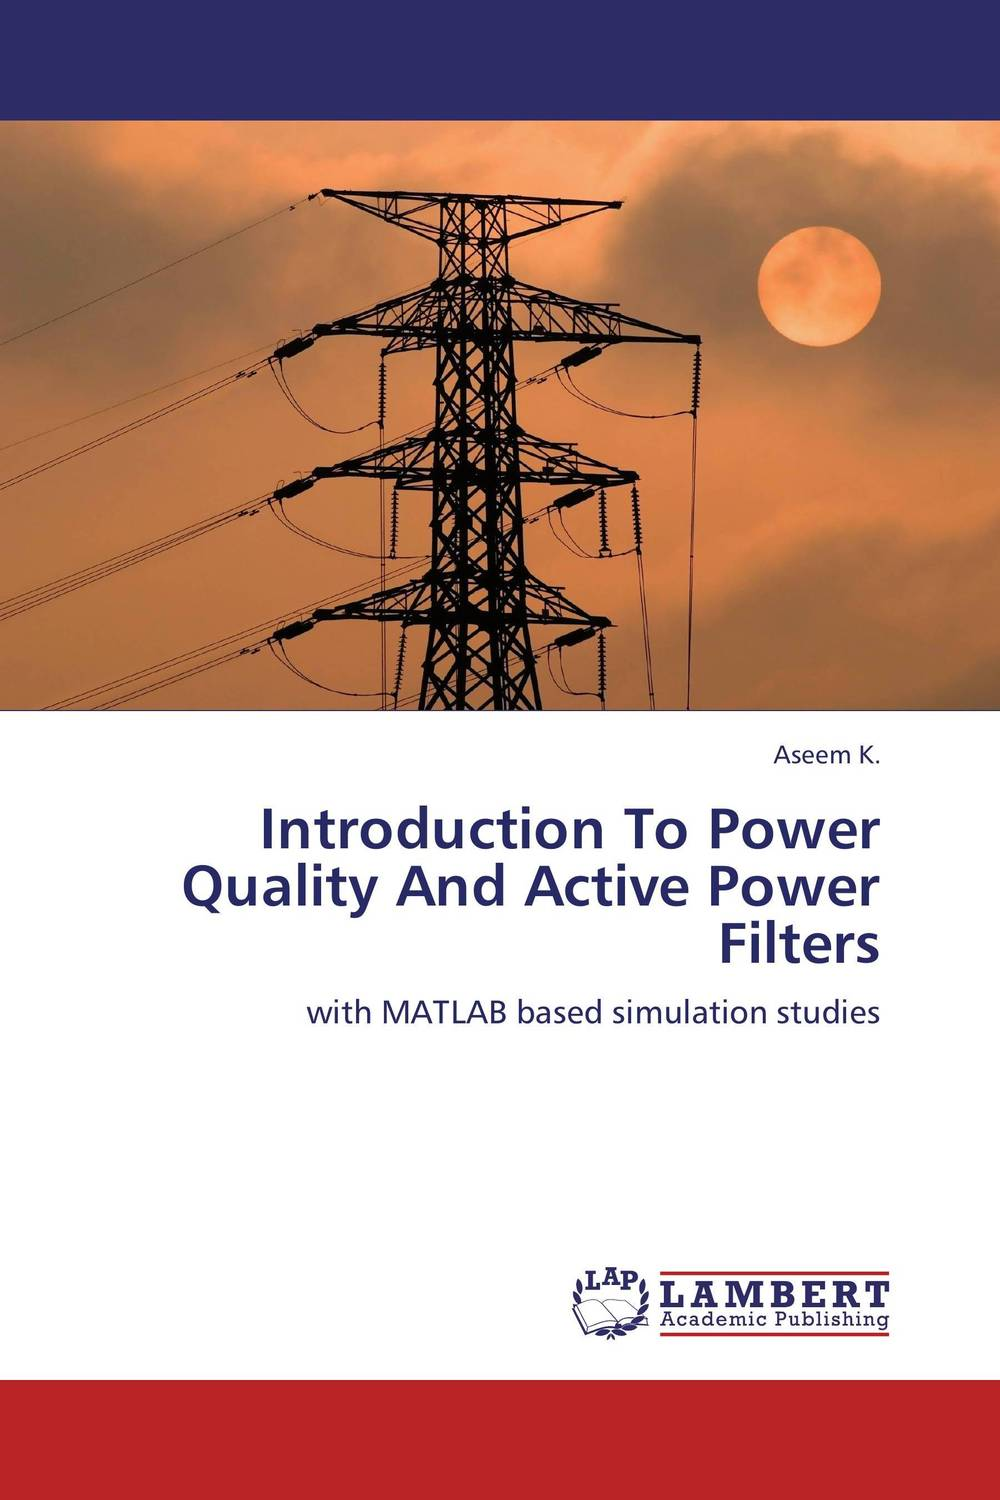 Introduction To Power Quality And Active Power Filters